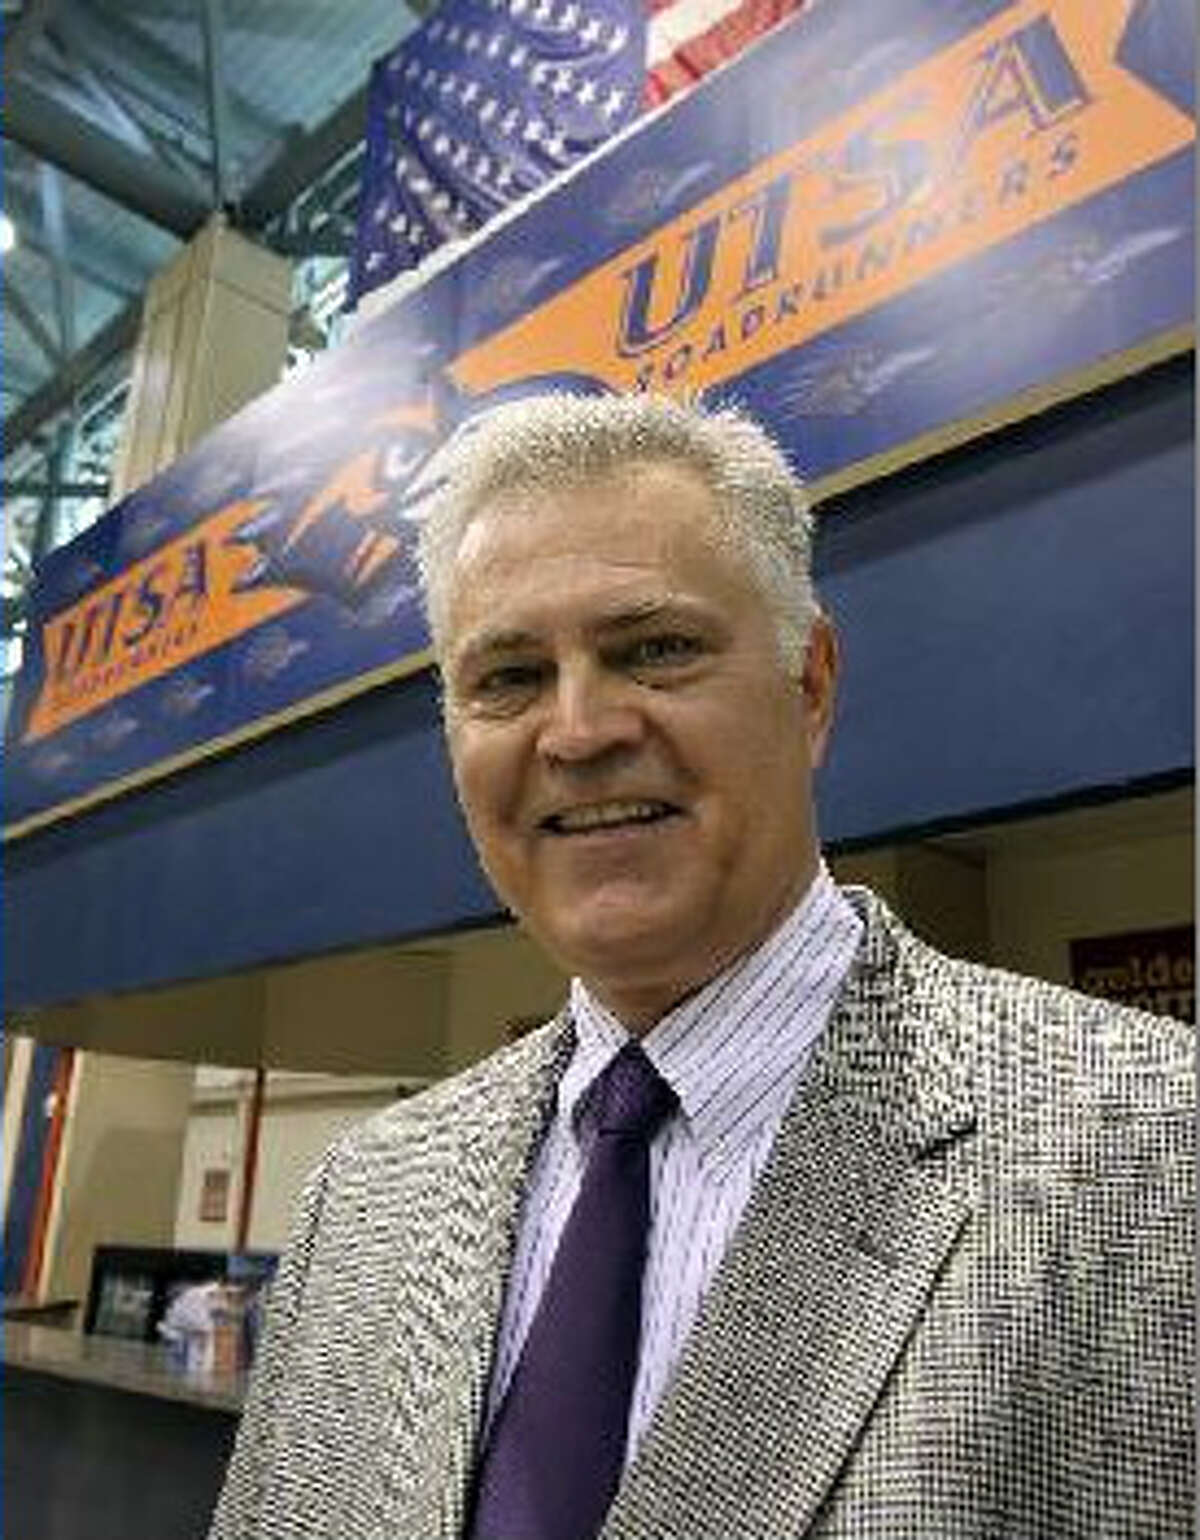 UTSA athletics marketing director Jim Goodman began with the Spurs in the early 1980s.